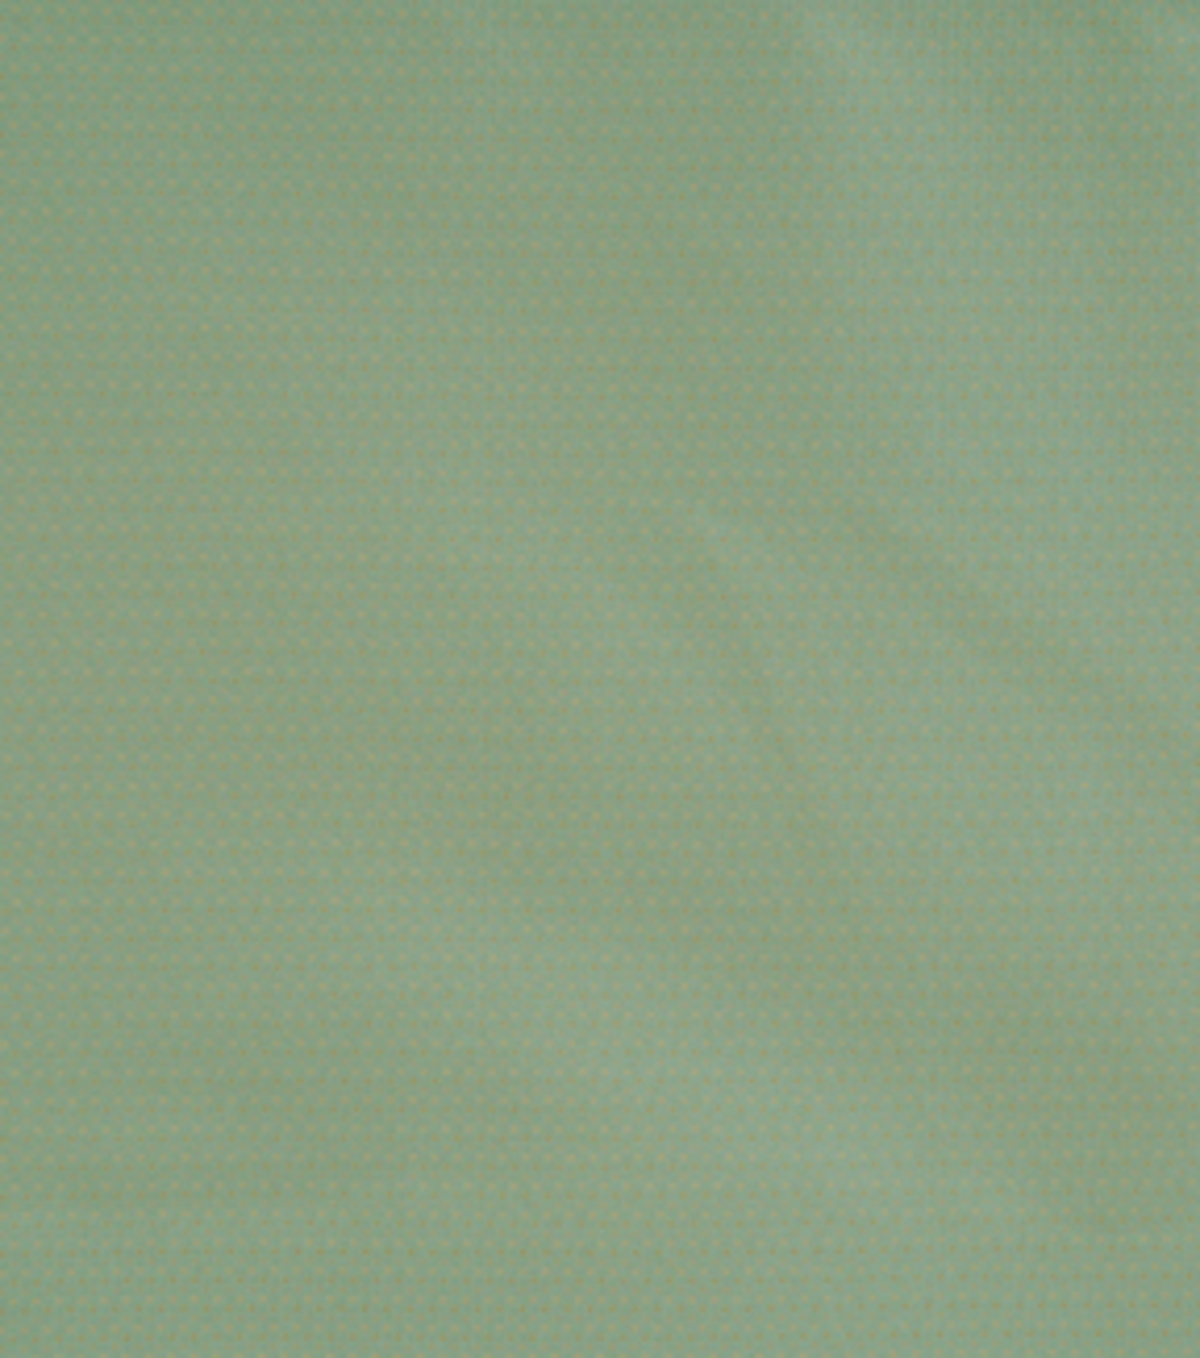 Home Decor 8\u0022x8\u0022 Fabric Swatch-Upholstery Fabric Eaton Square Pier Turquoise